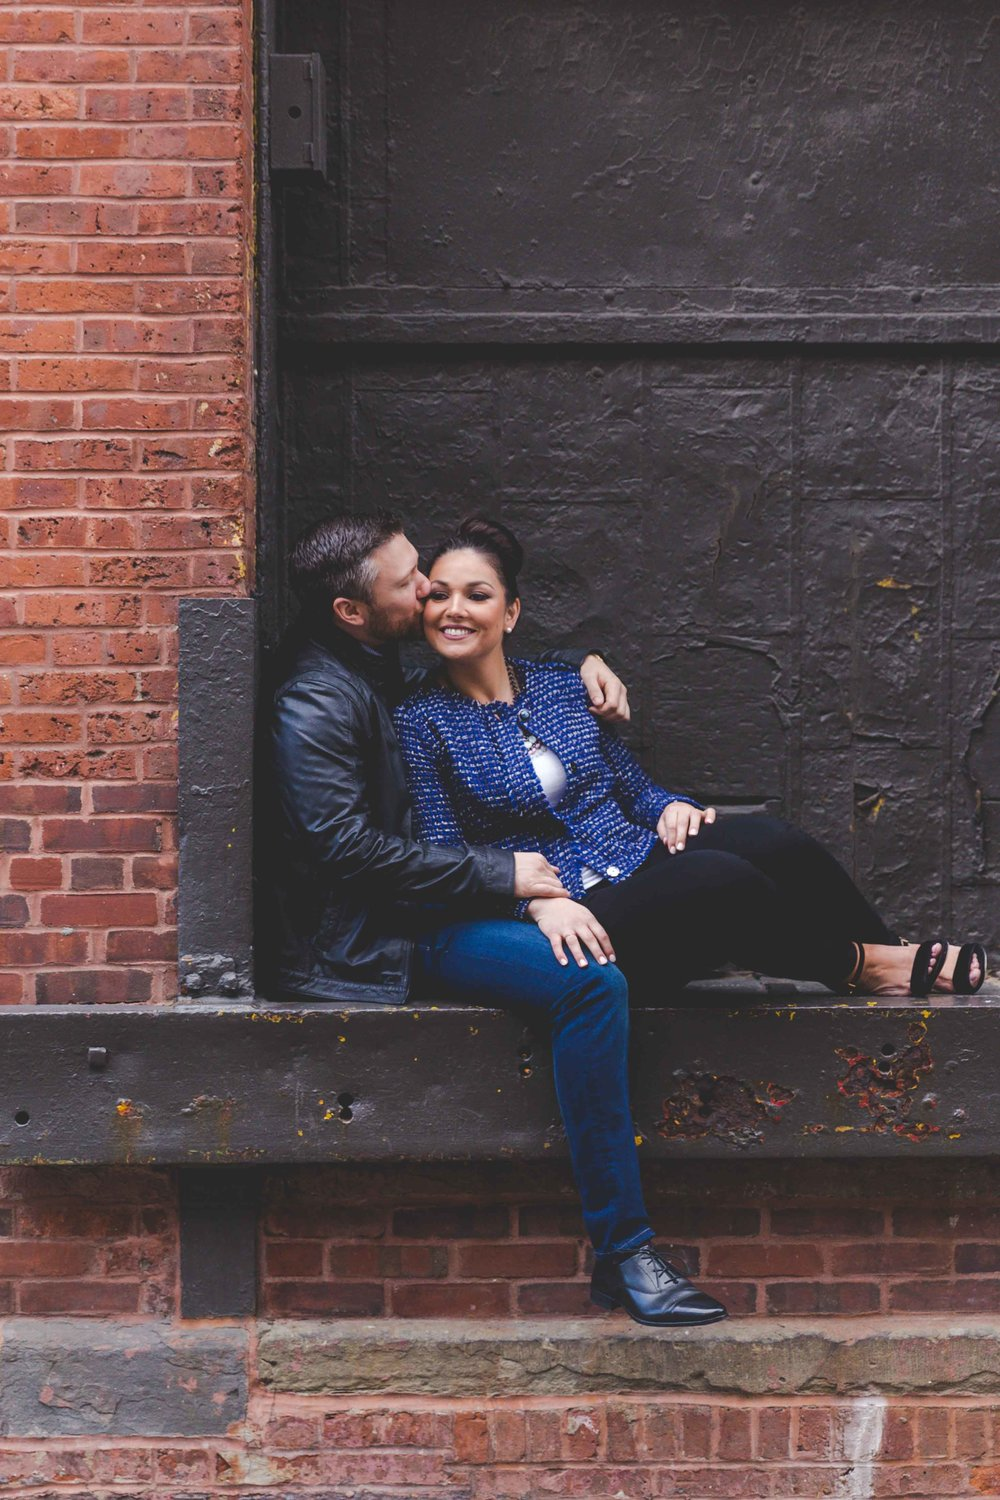 engagement-photographer-NYC-best-photography-2.jpg